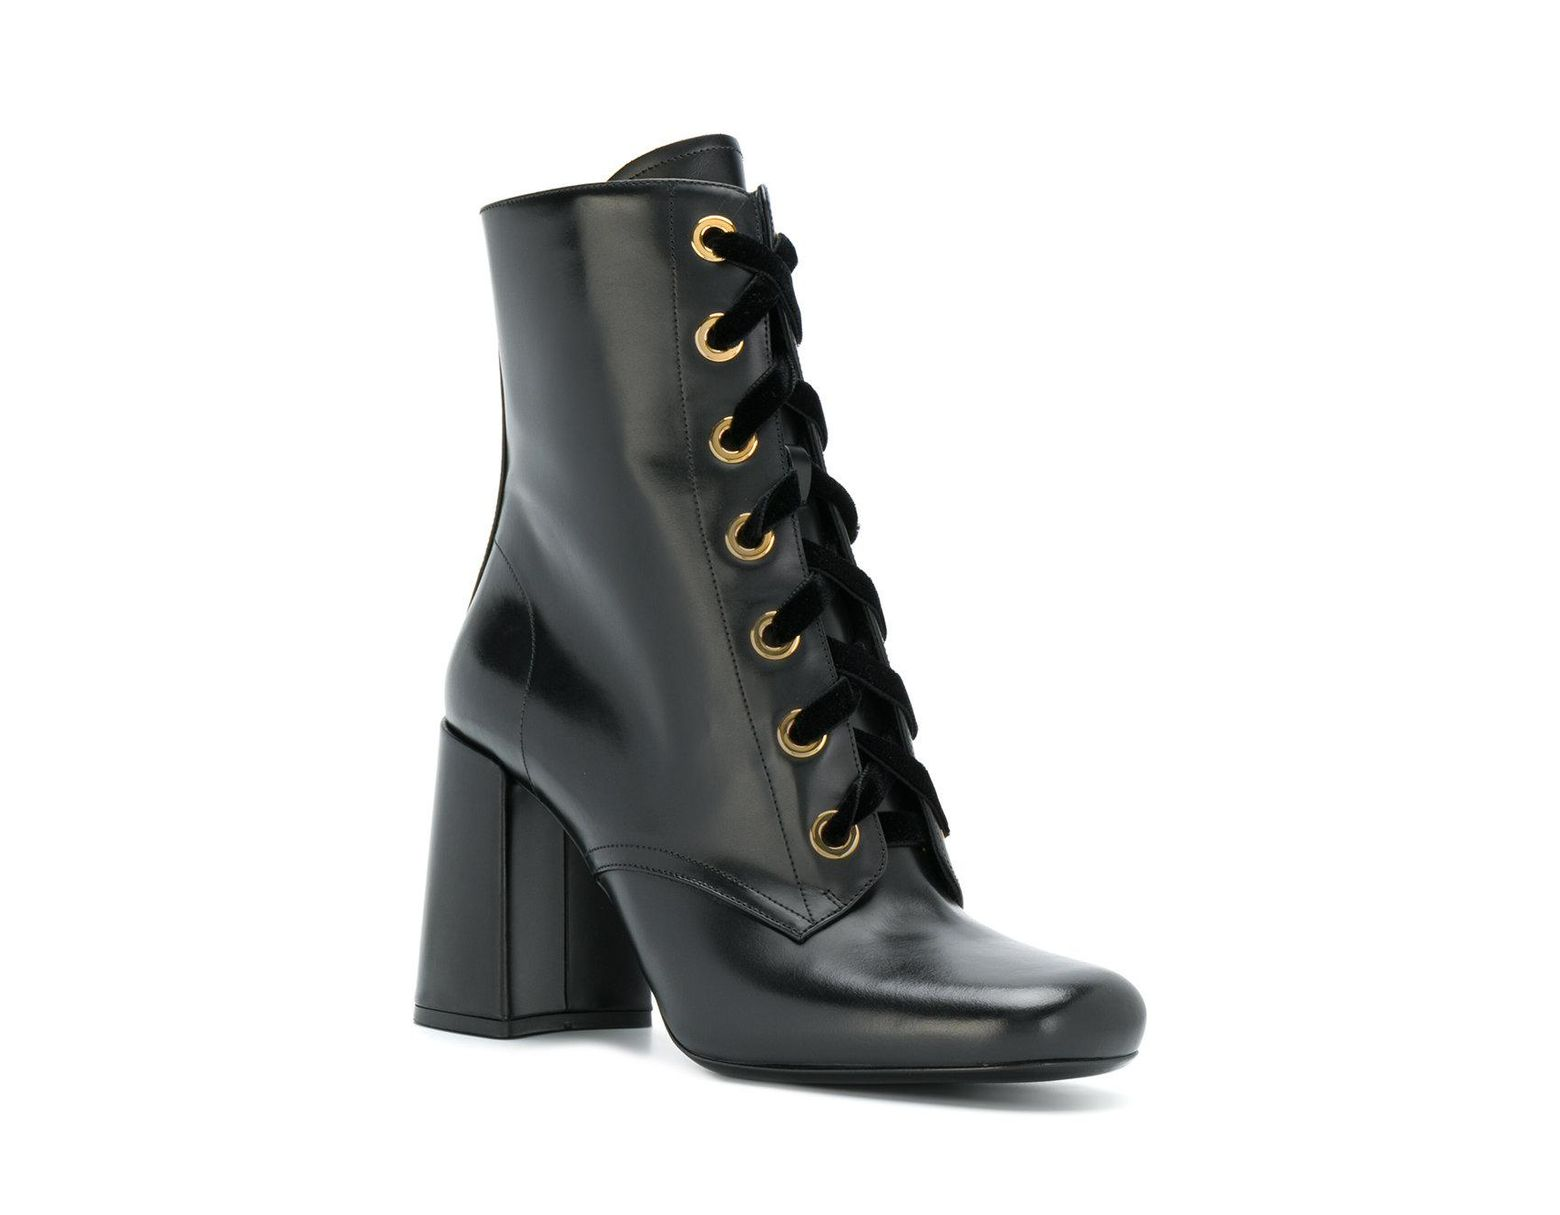 06556d9edee Women's Black High Heel Lace-up Booties